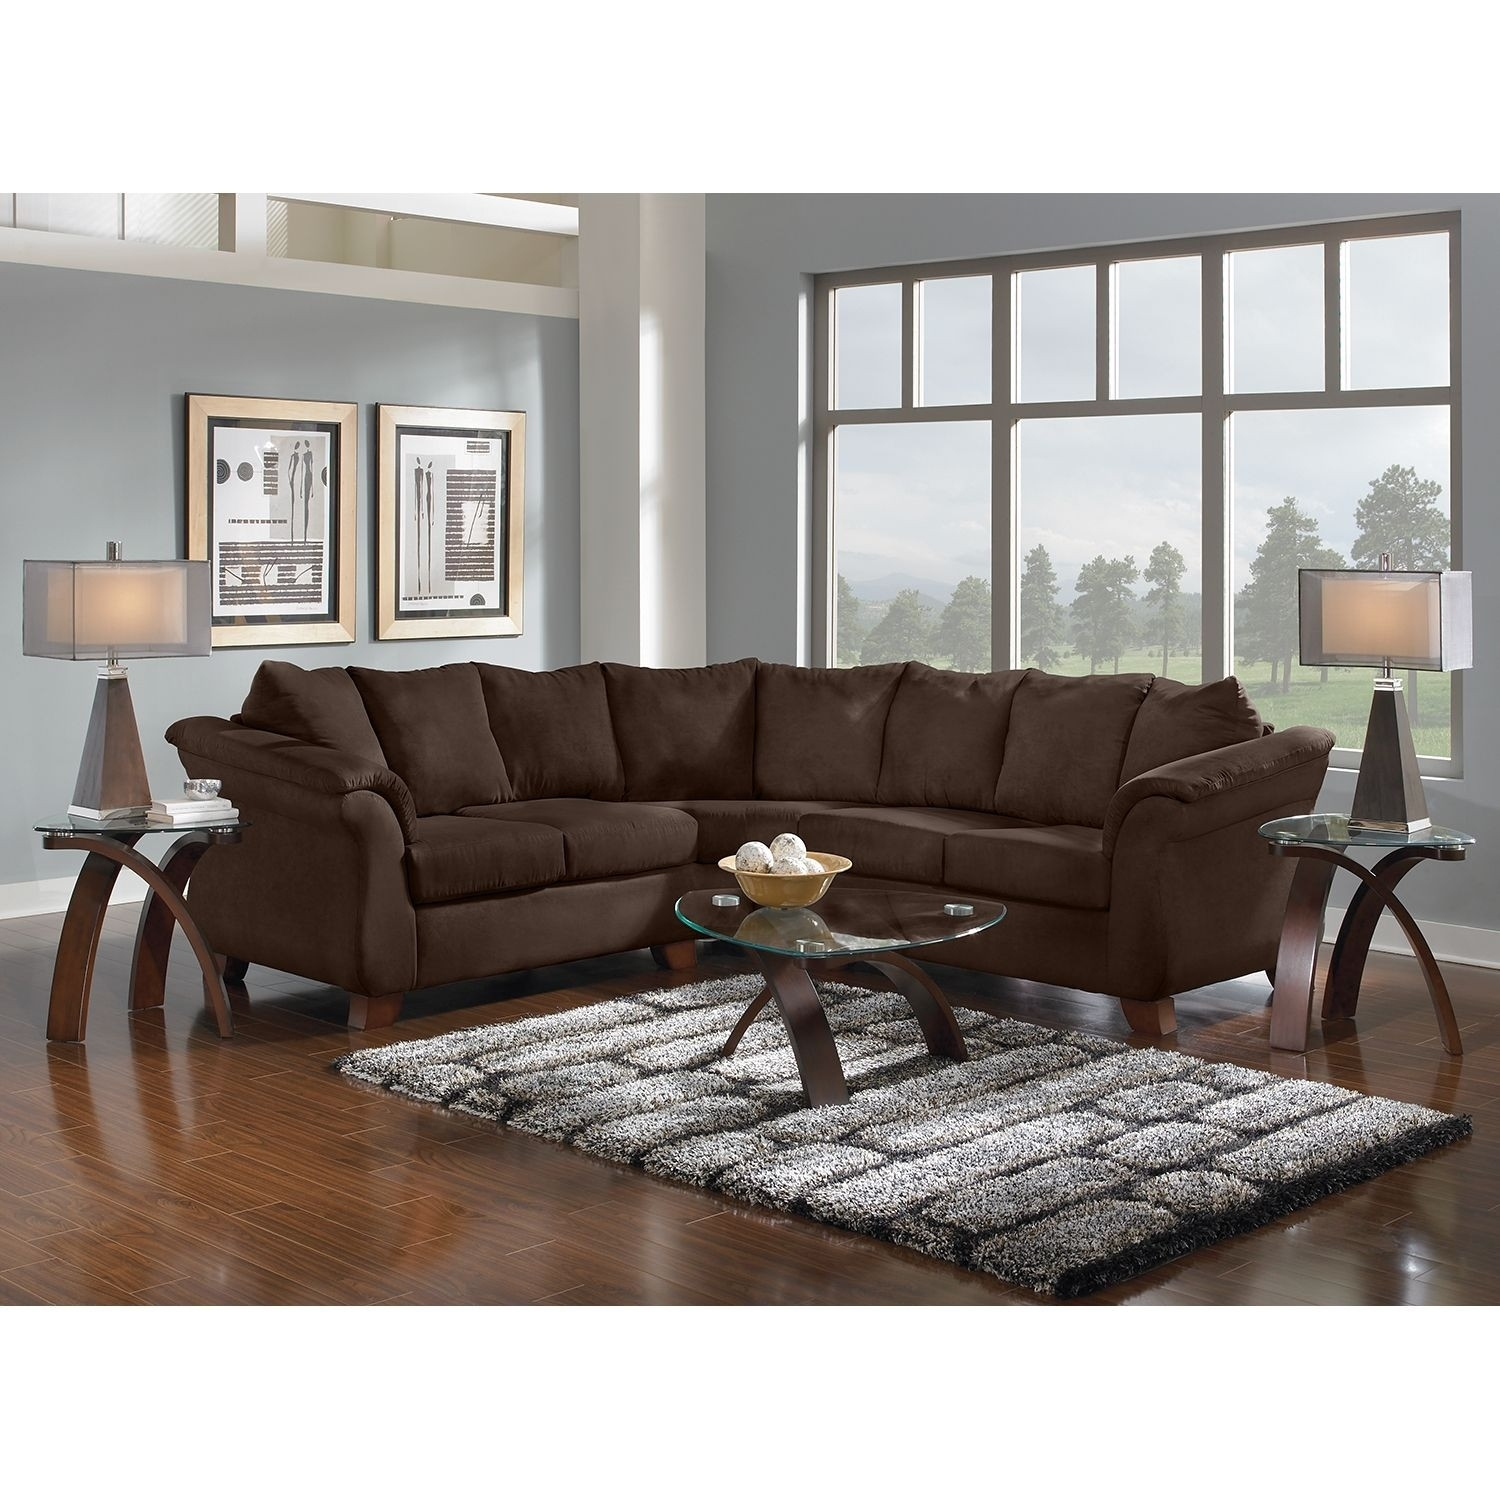 39 Collection Sectional Living Room Ideas Graphics | Living Room Regarding Aquarius Dark Grey 2 Piece Sectionals With Raf Chaise (Photo 20 of 30)